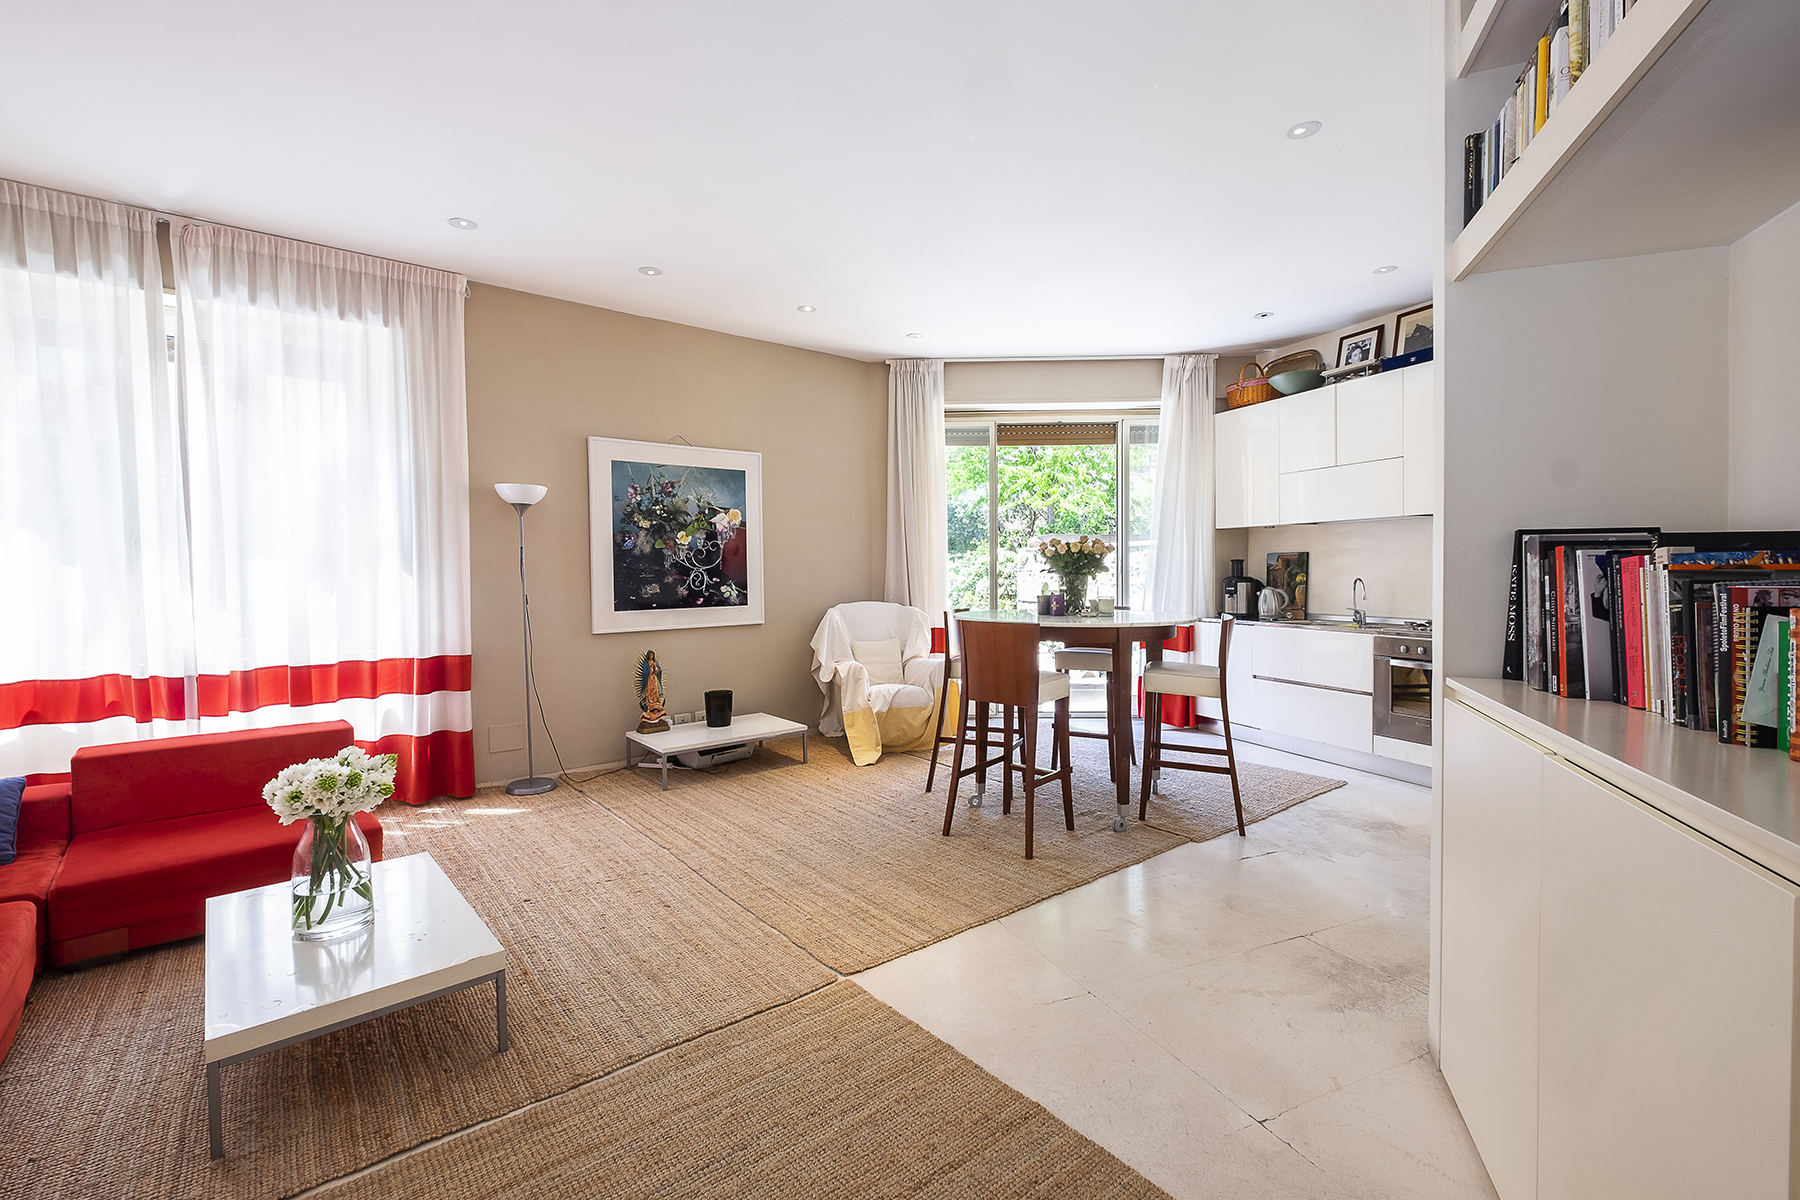 Property for Sale at Apartment with terrace in Trastevere neighborhood Rome, Rome Italy